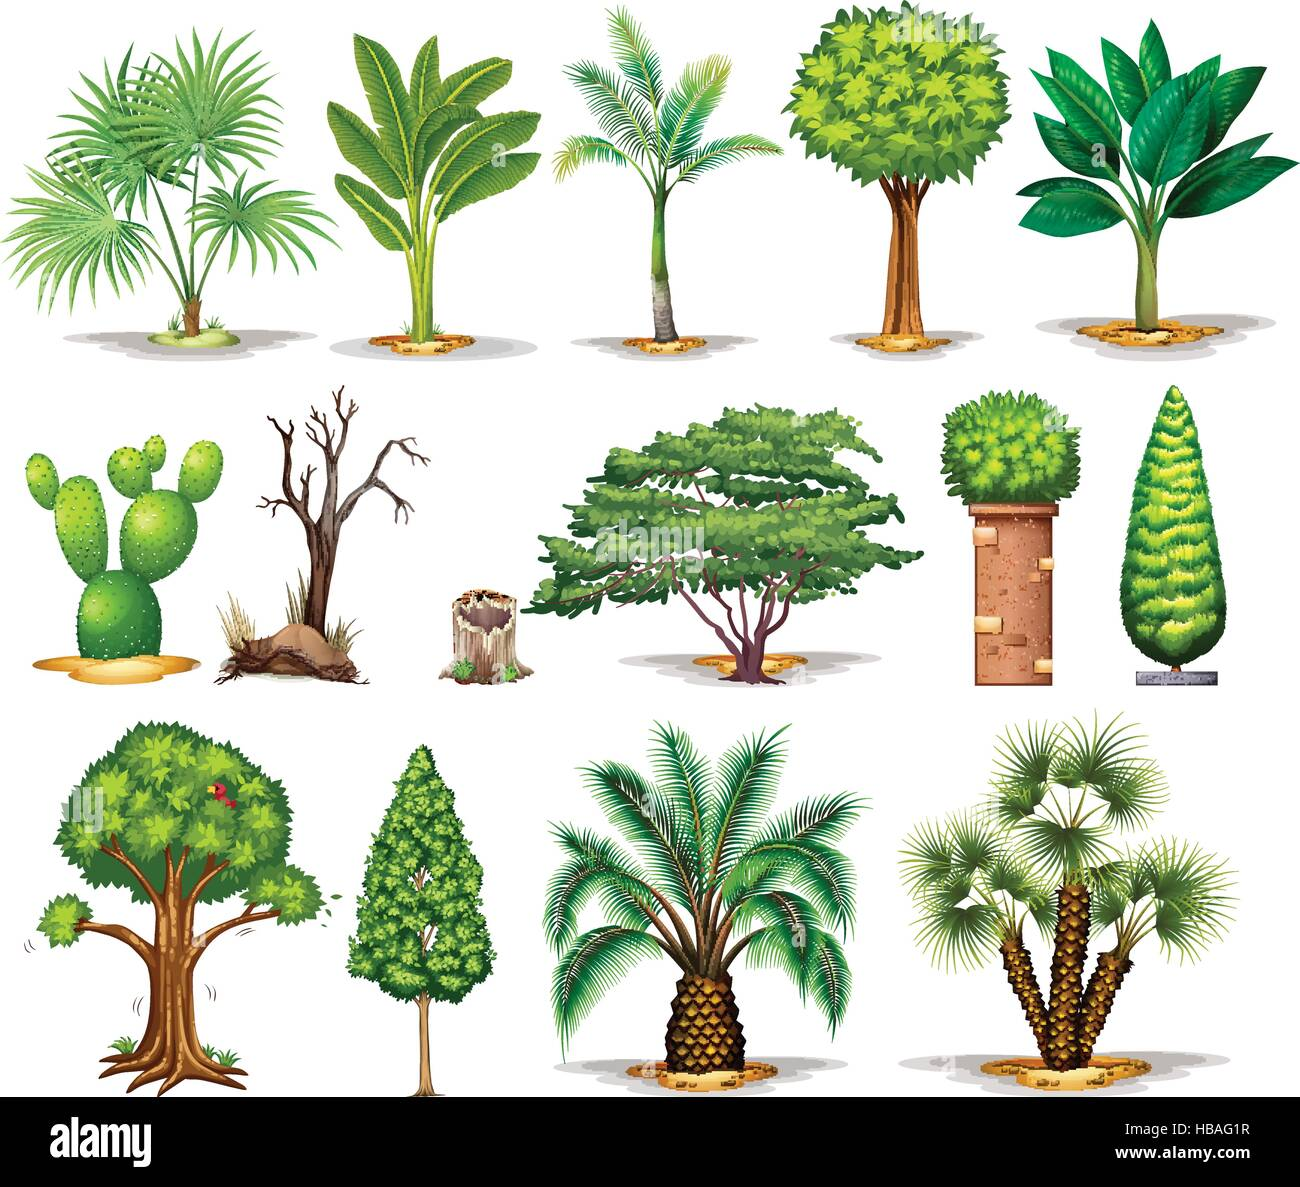 Different Types Of Trees Illustration Stock Vector Image